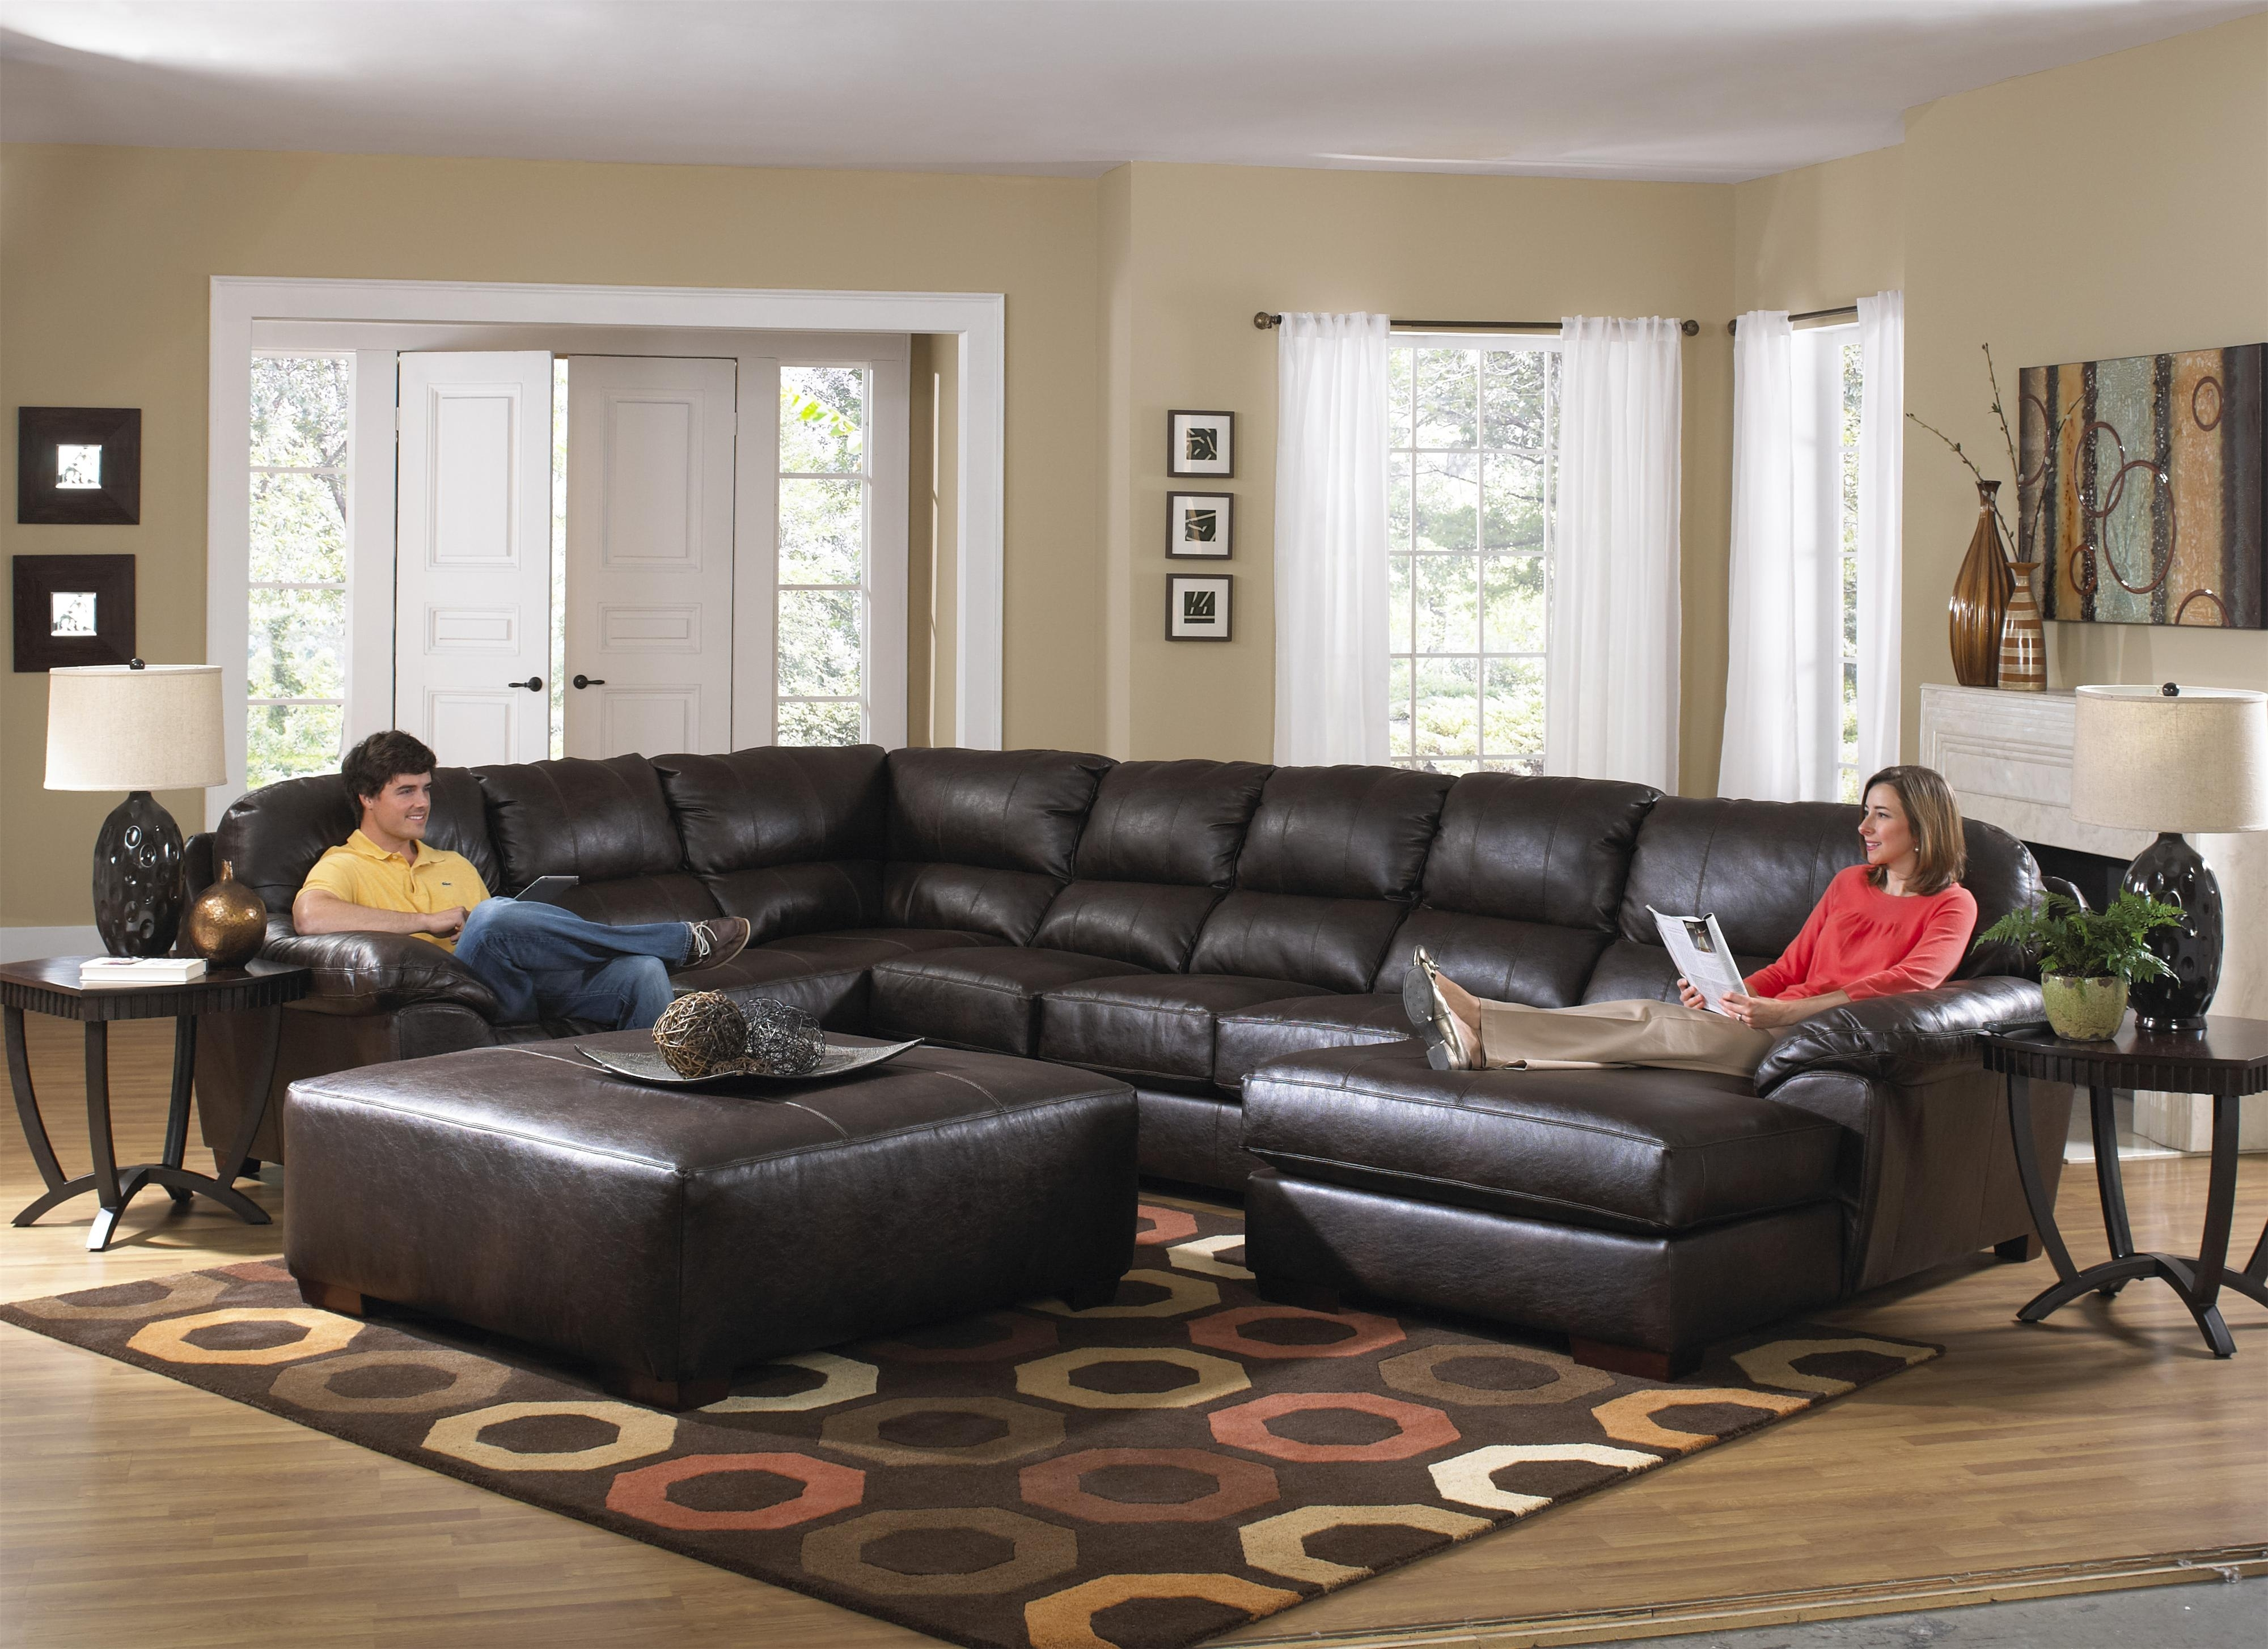 Couch With Large Ottoman – Mogams Inside Sectional Couches With Large Ottoman (View 8 of 10)